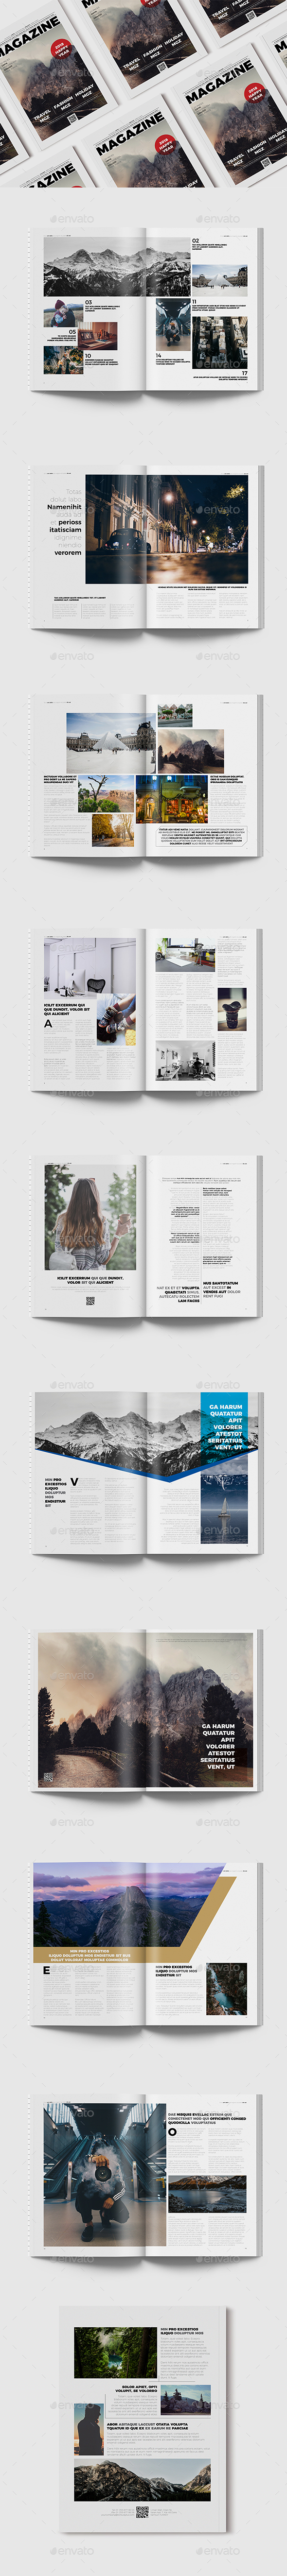 GraphicRiver Magazine Template 20 Page 21160566